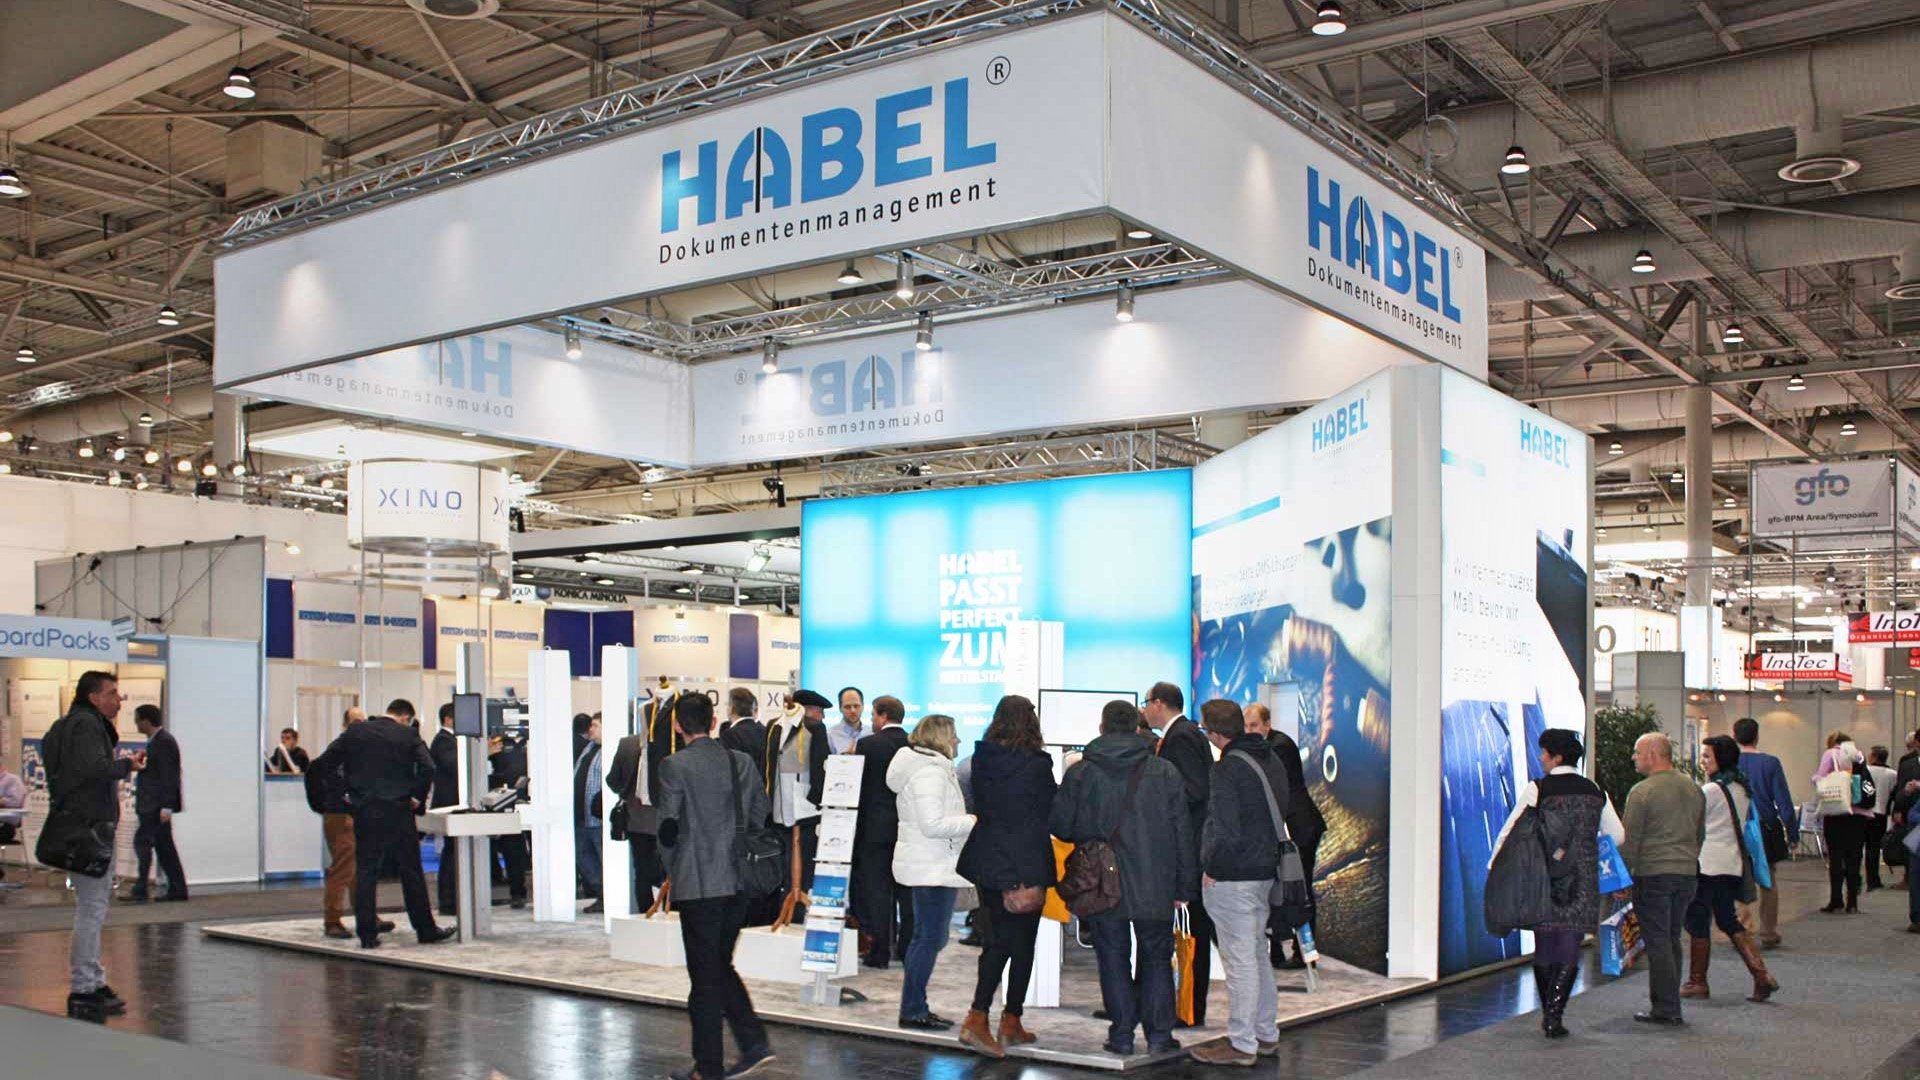 habel auf der cebit 2017 messestand dokumentenmangement